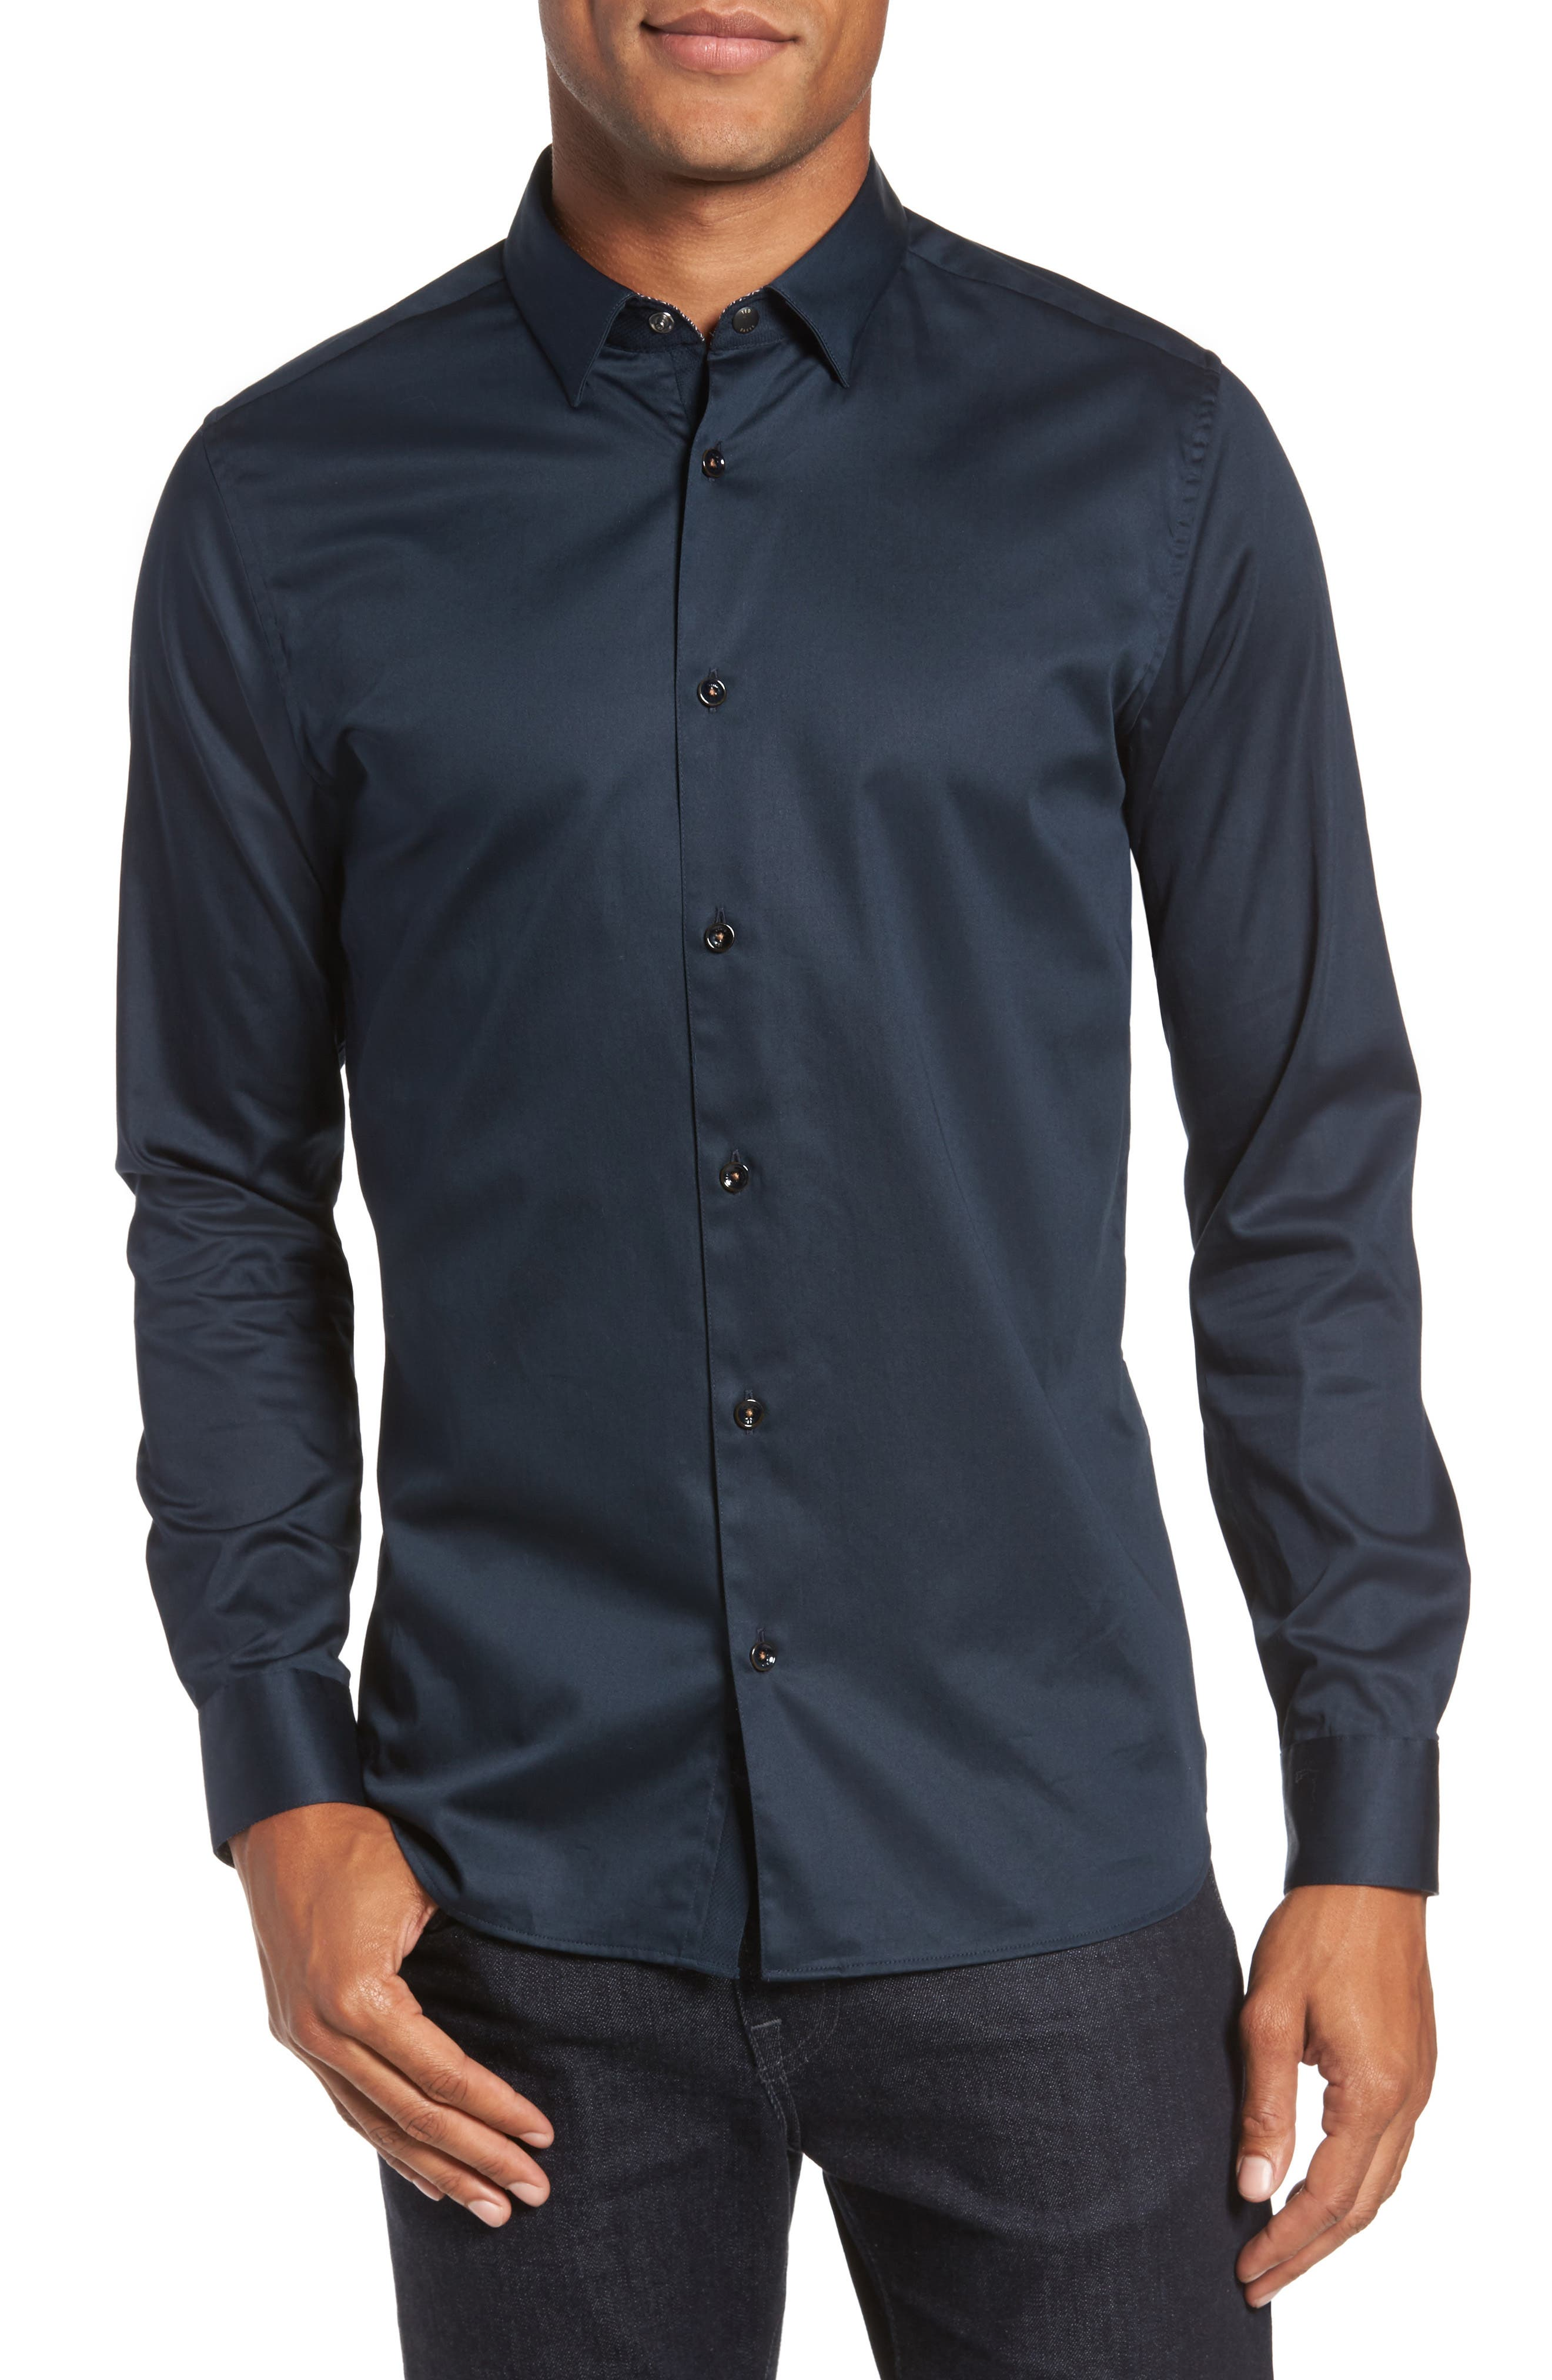 Marsay Modern Slim Fit Sport Shirt,                             Main thumbnail 1, color,                             Navy